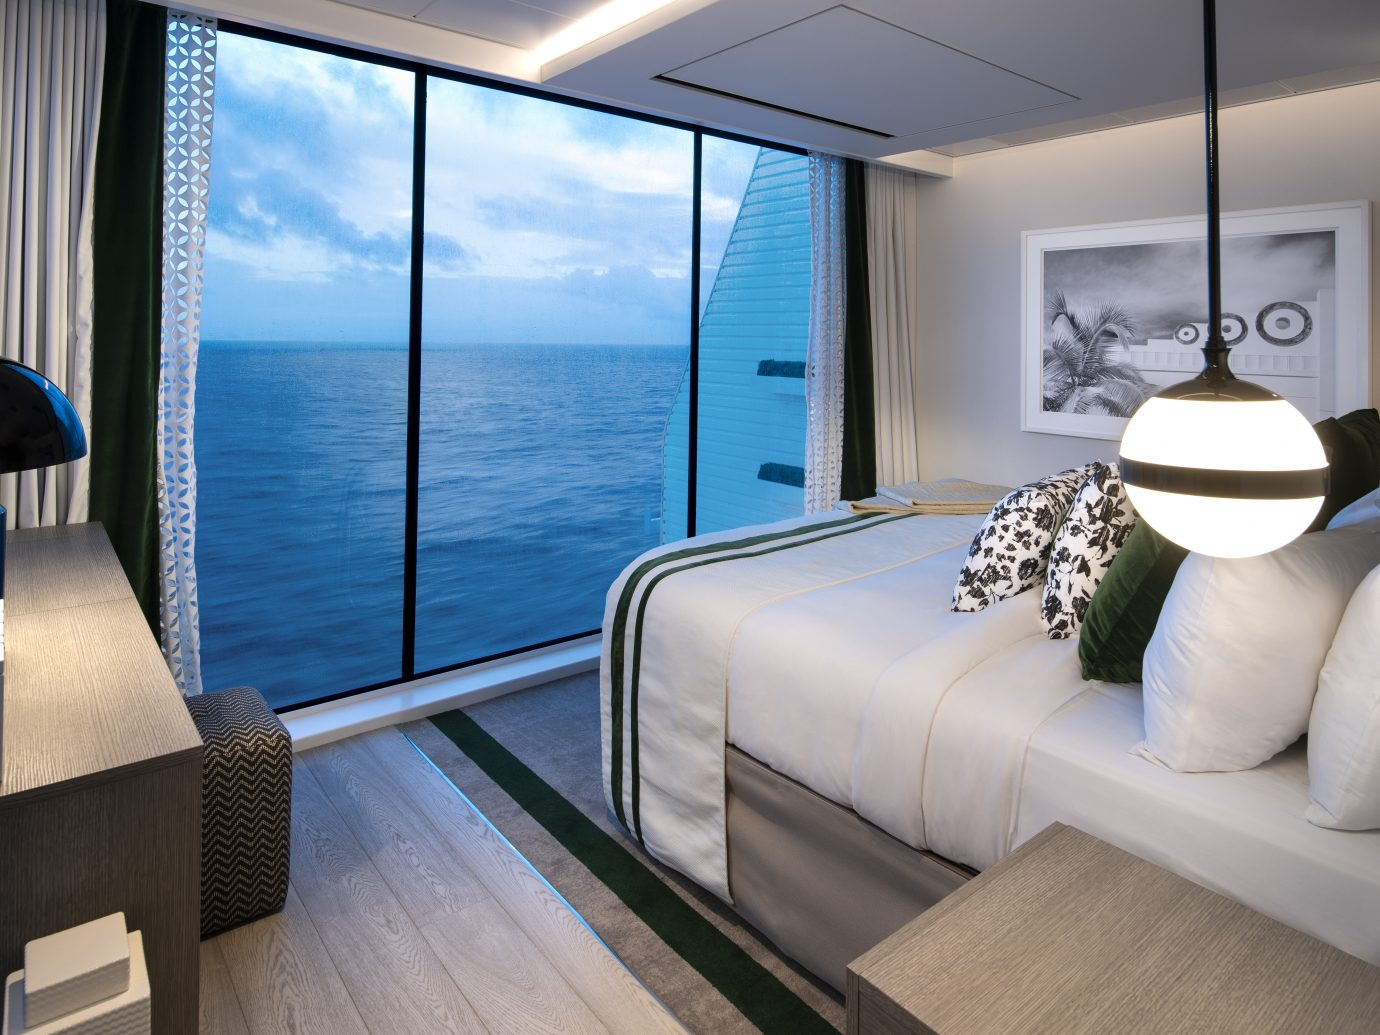 Bedroom of Edge Villa at Celebrity Cruises